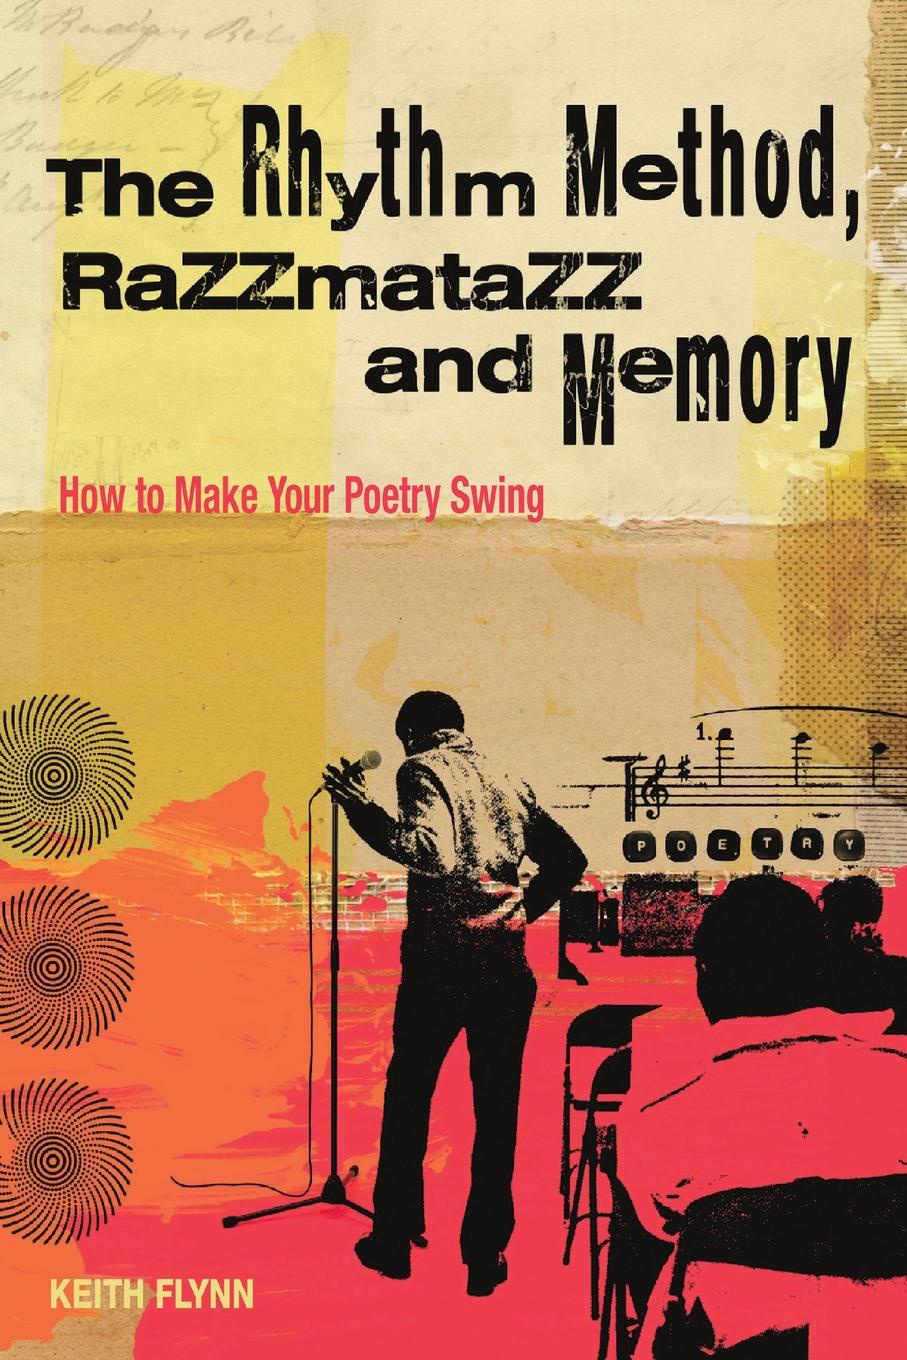 Keith Flynn The Rhythm Method, Razzamatazz, and Memory. How to Make Your Poetry Swing mark burnell the rhythm section